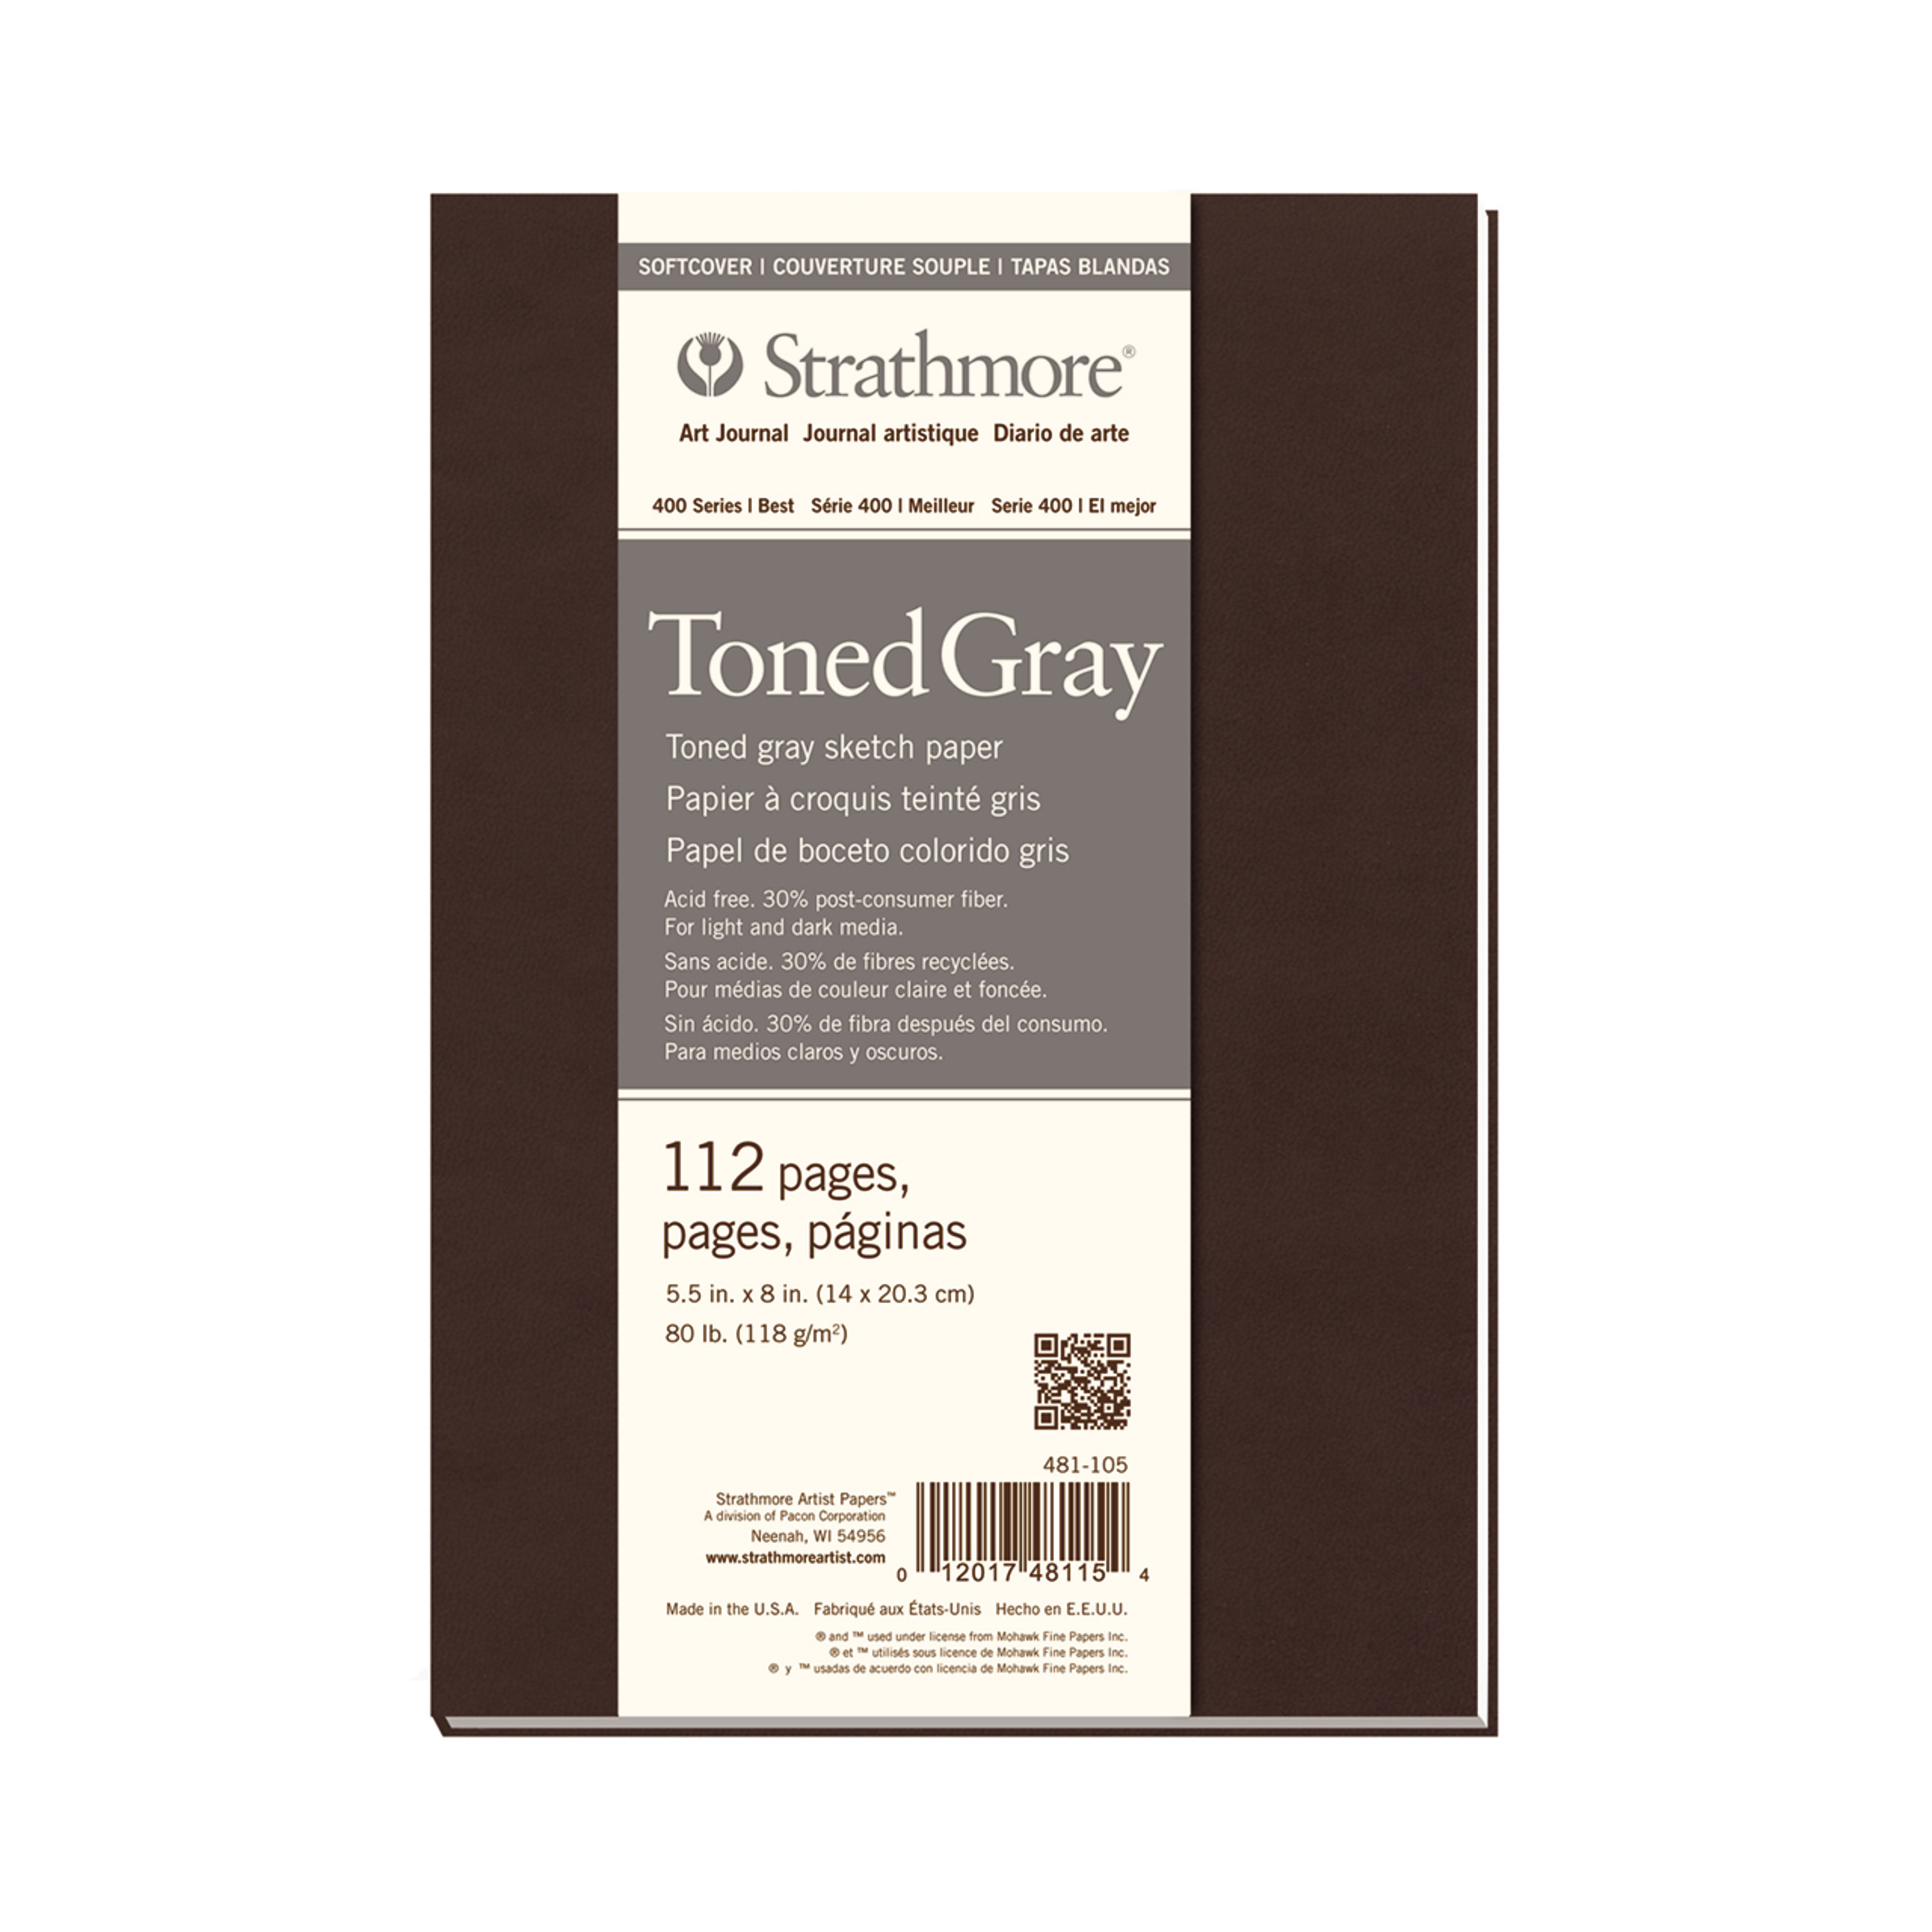 "Strathmore Soft Cover Toned Art Journal, 400 Series, 112 pages, 5.5"" x 8"", Gray"